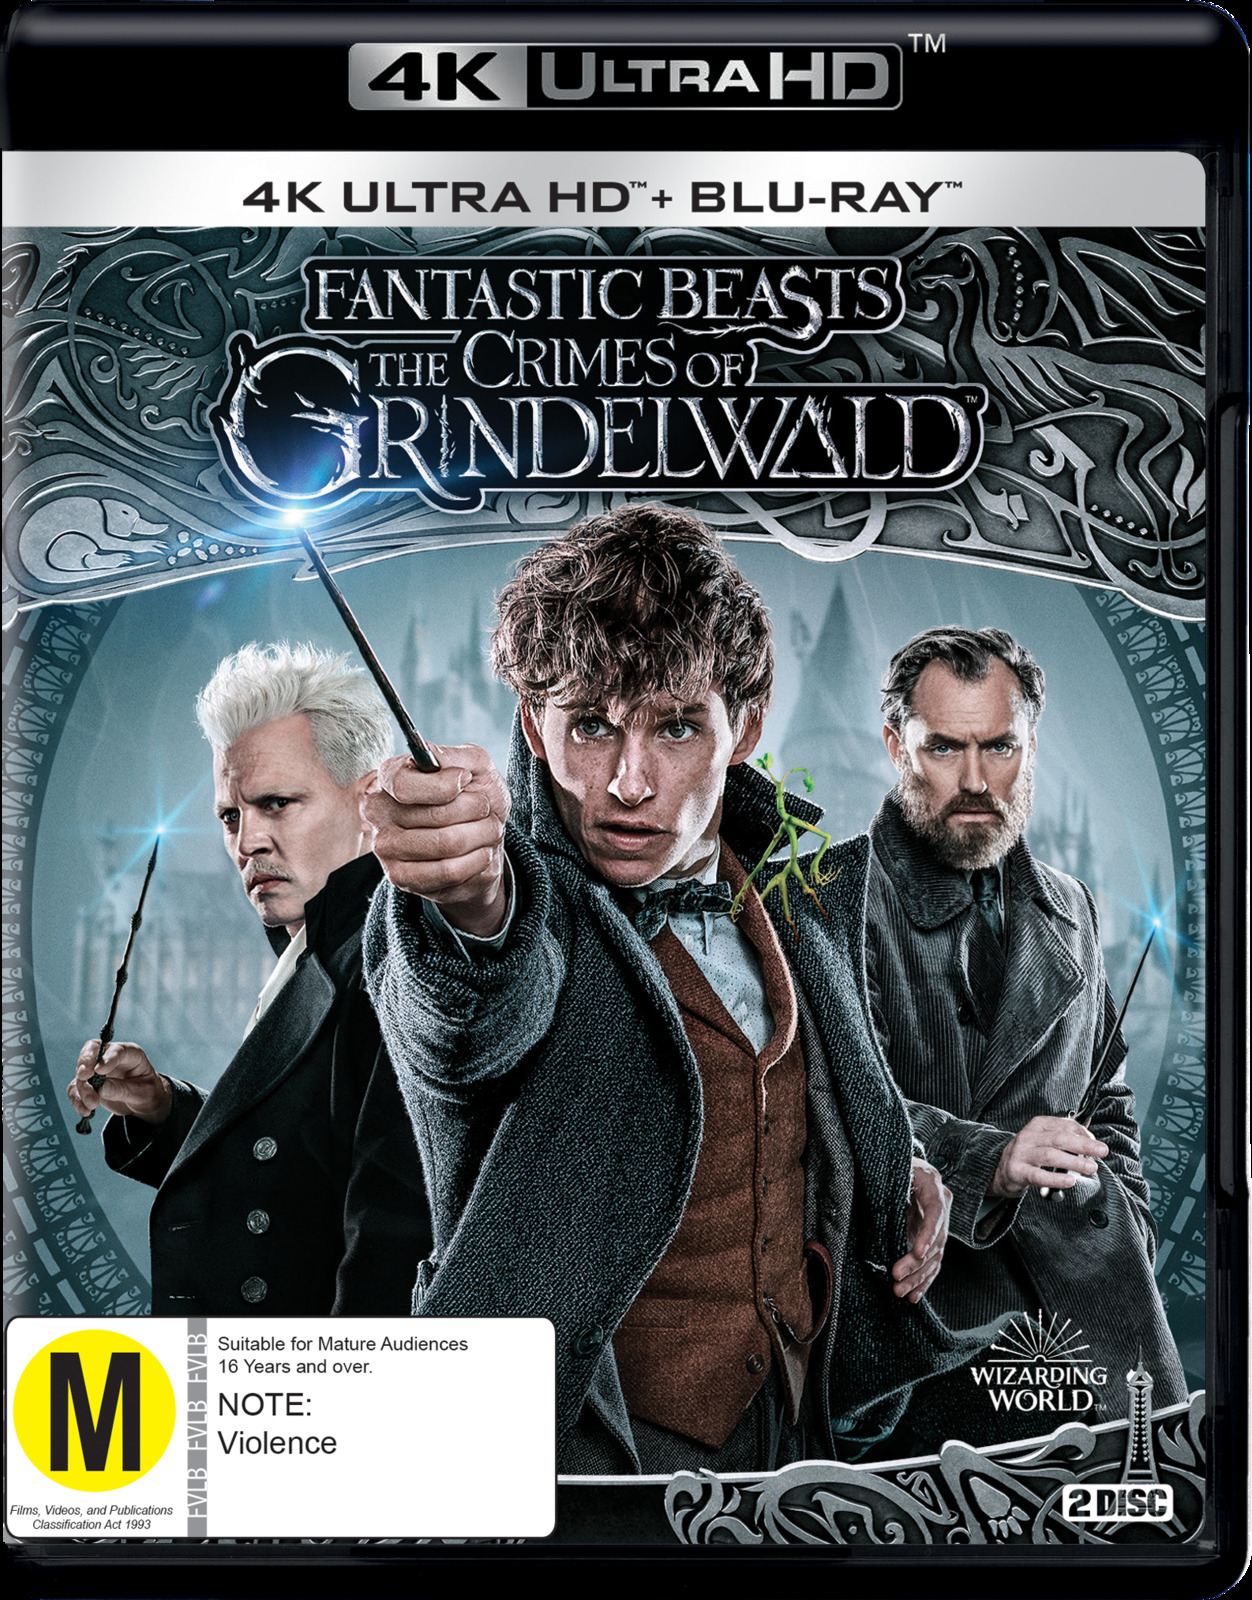 Fantastic Beasts: The Crimes Of Grindelwald on UHD Blu-ray image